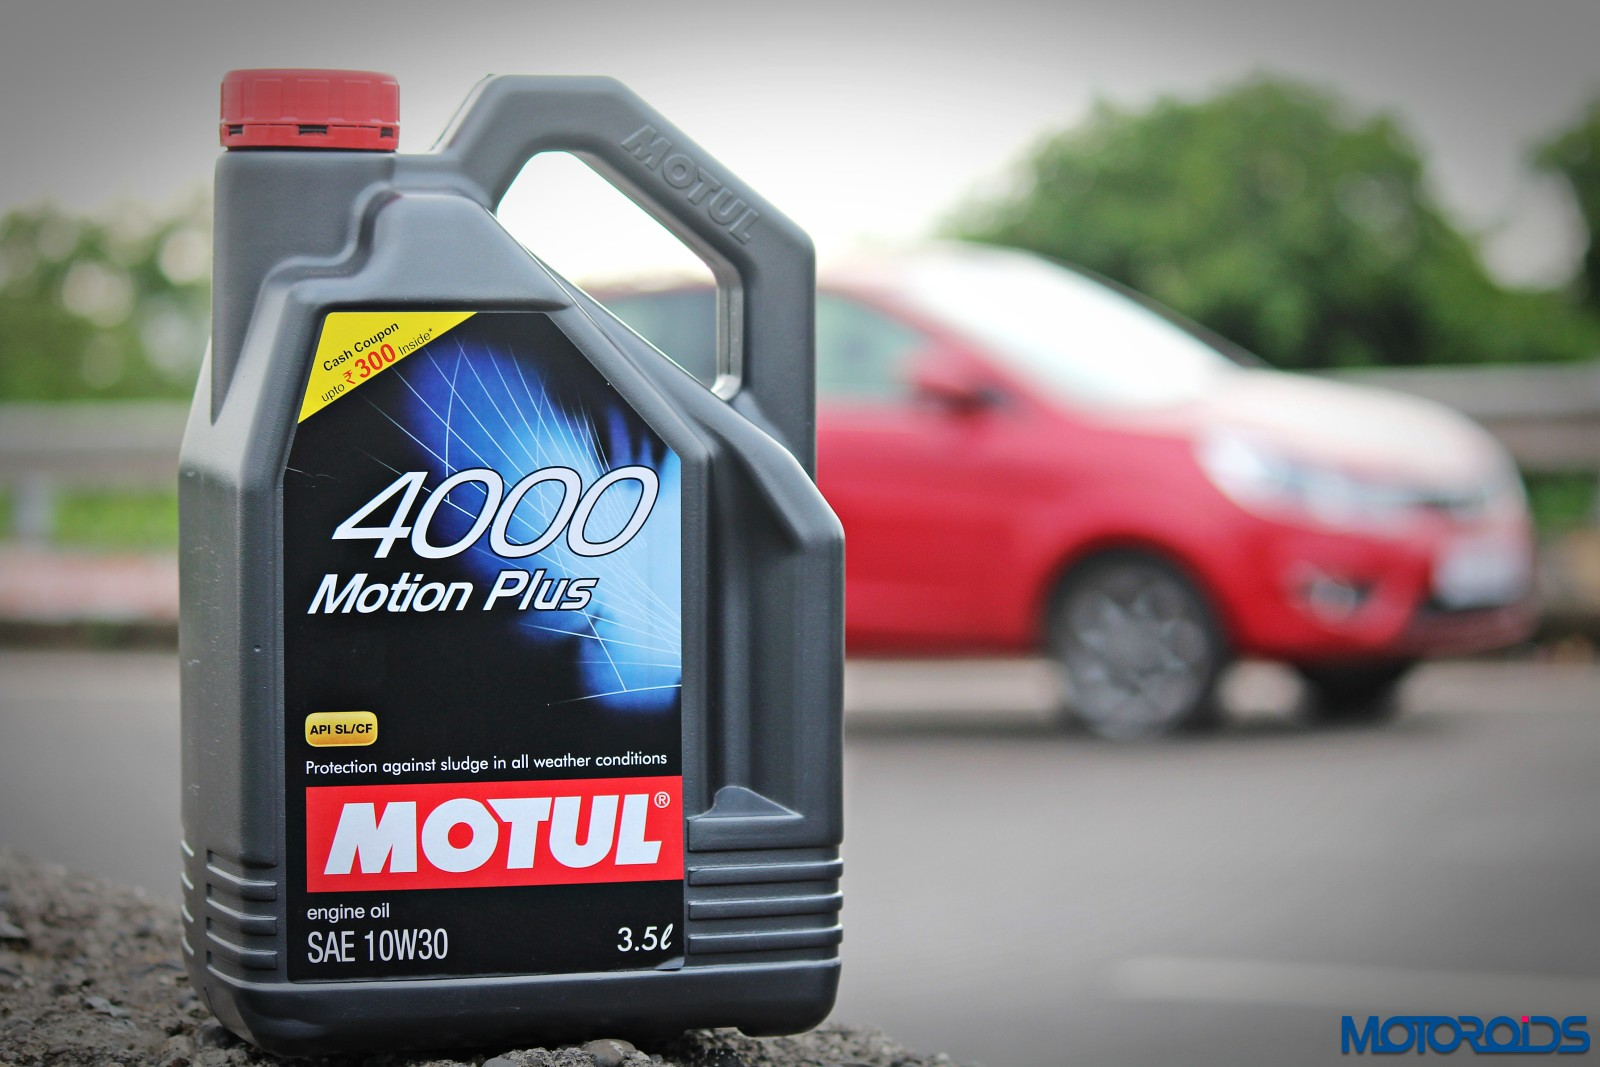 Motul All About Lubes : Engine Oil Basics, Difference Between Car